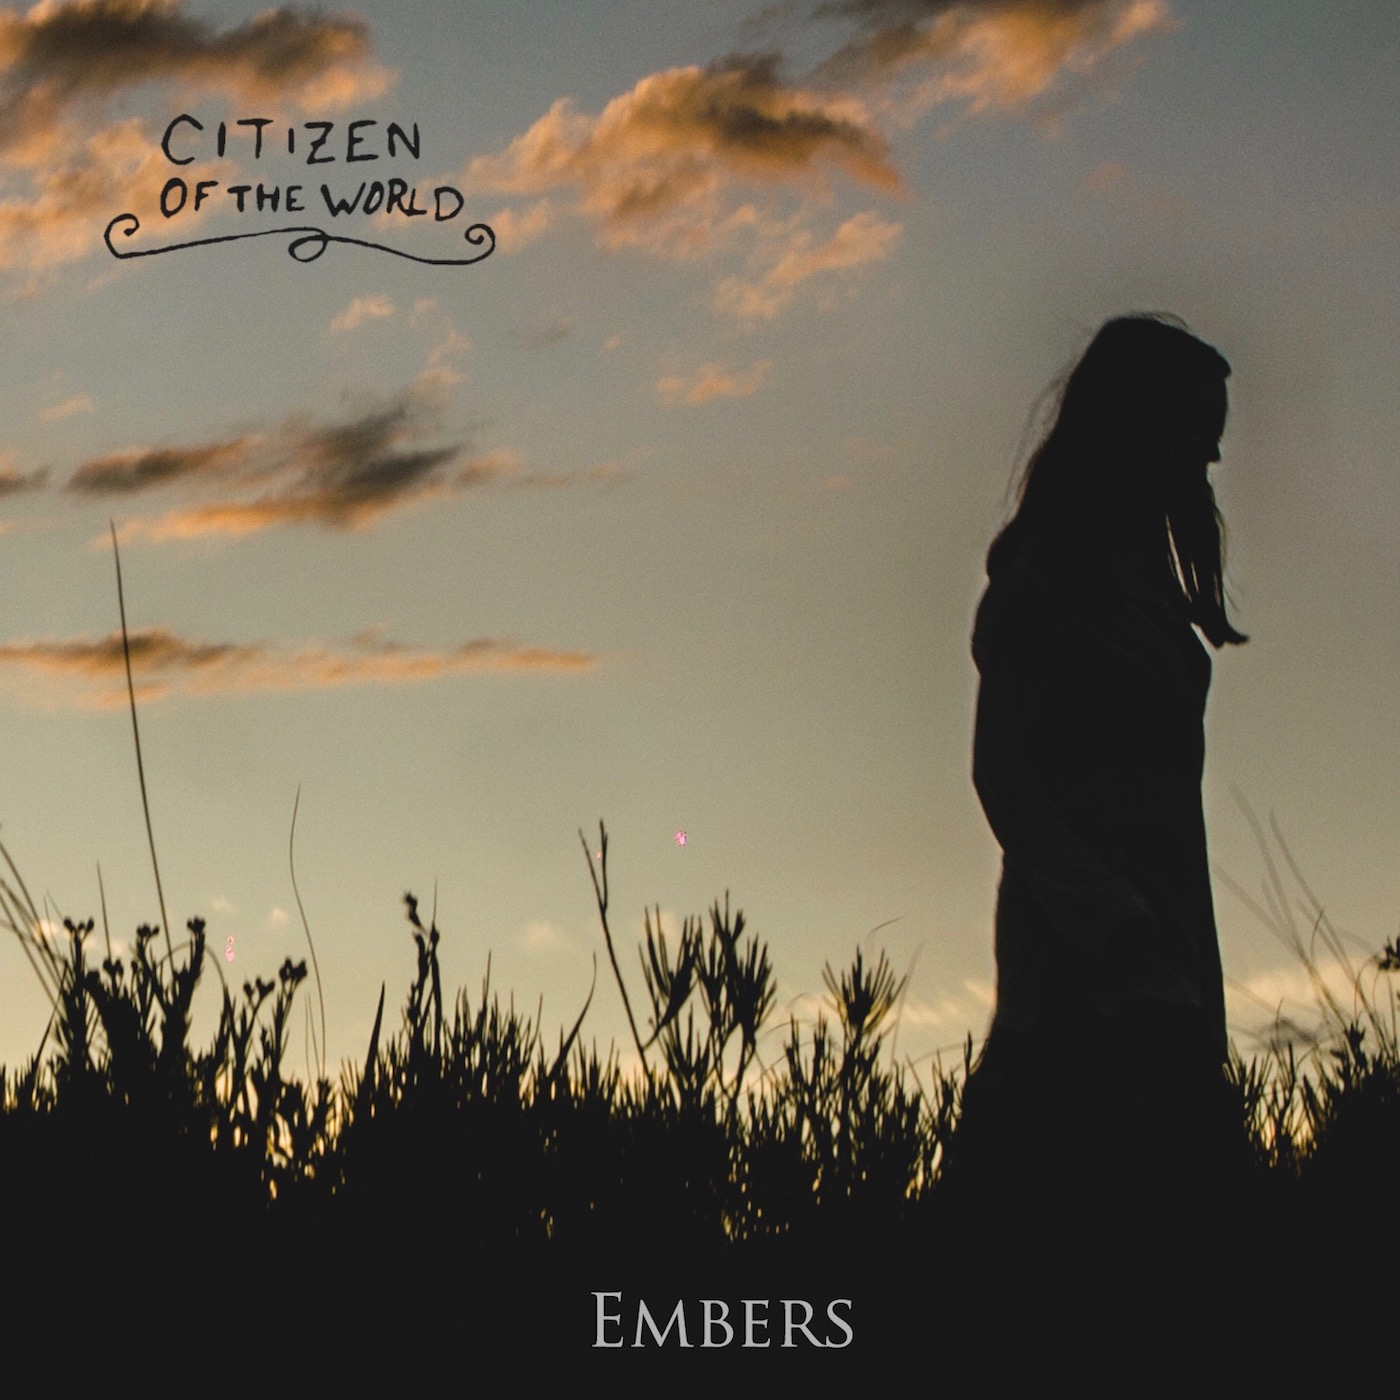 Citizen of the World - Embers